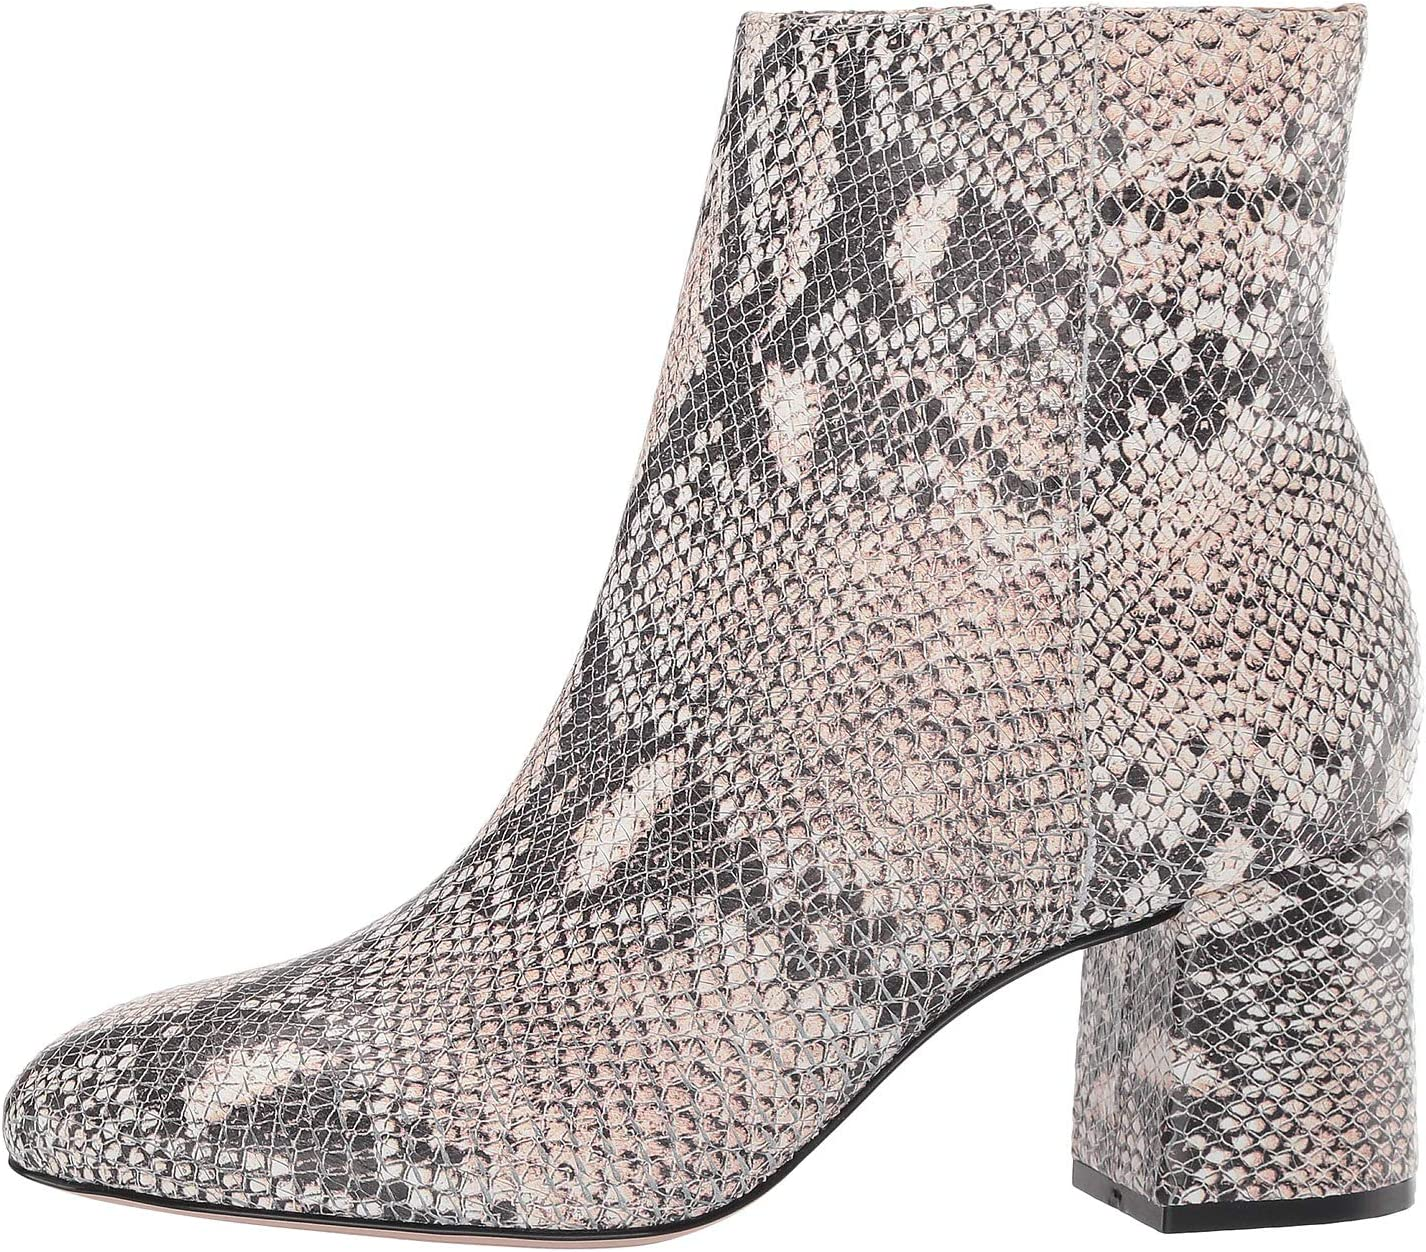 ABLE Celina Ankle Boot   Women's shoes   2020 Newest